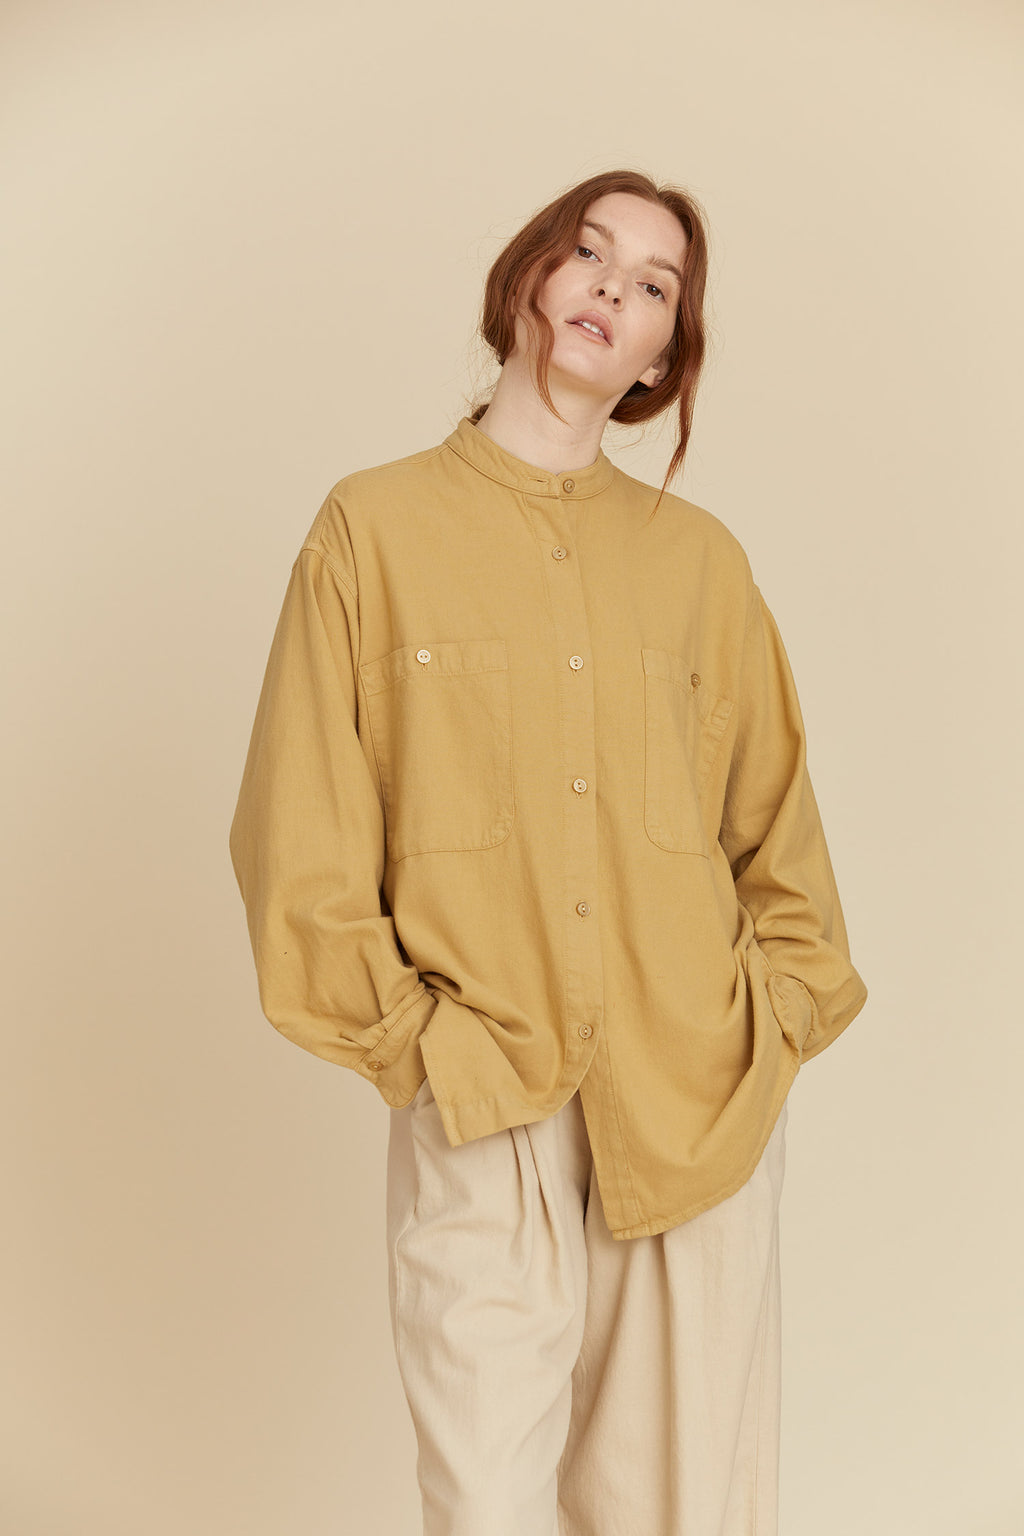 MECA SHIRTS / LF-MS09 / TAN